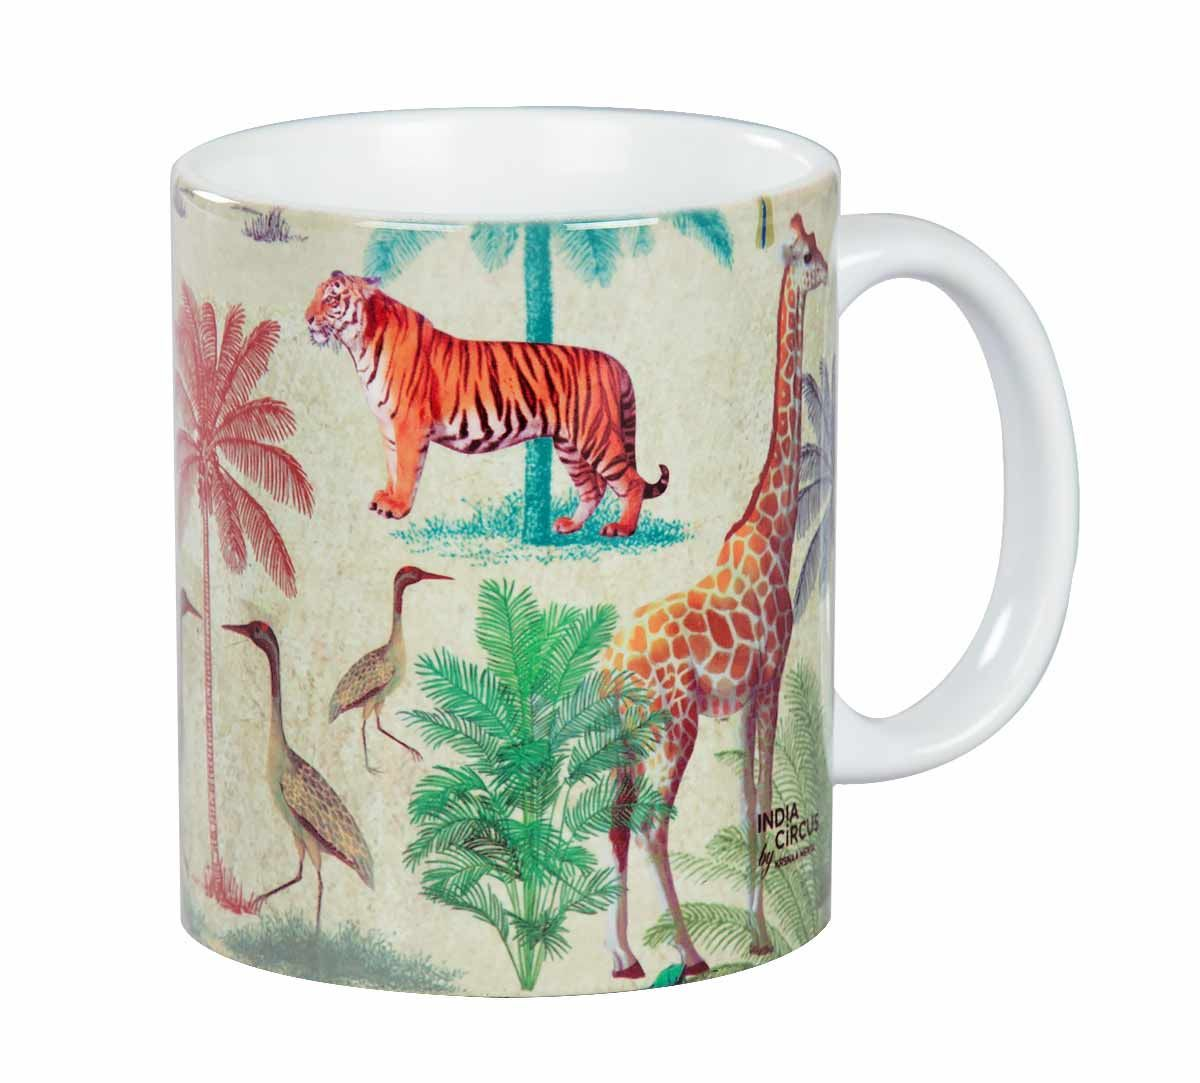 Forest Dominion Mug